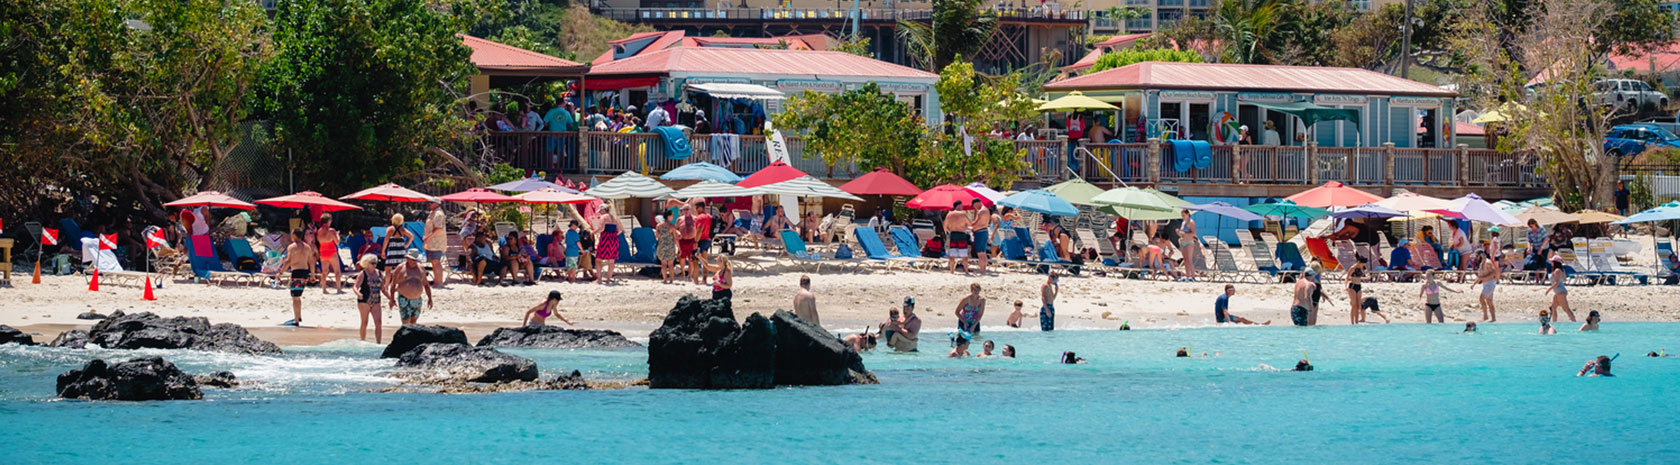 A large crowd of beachgoers enjoying crystal blue waters and beach side businesses